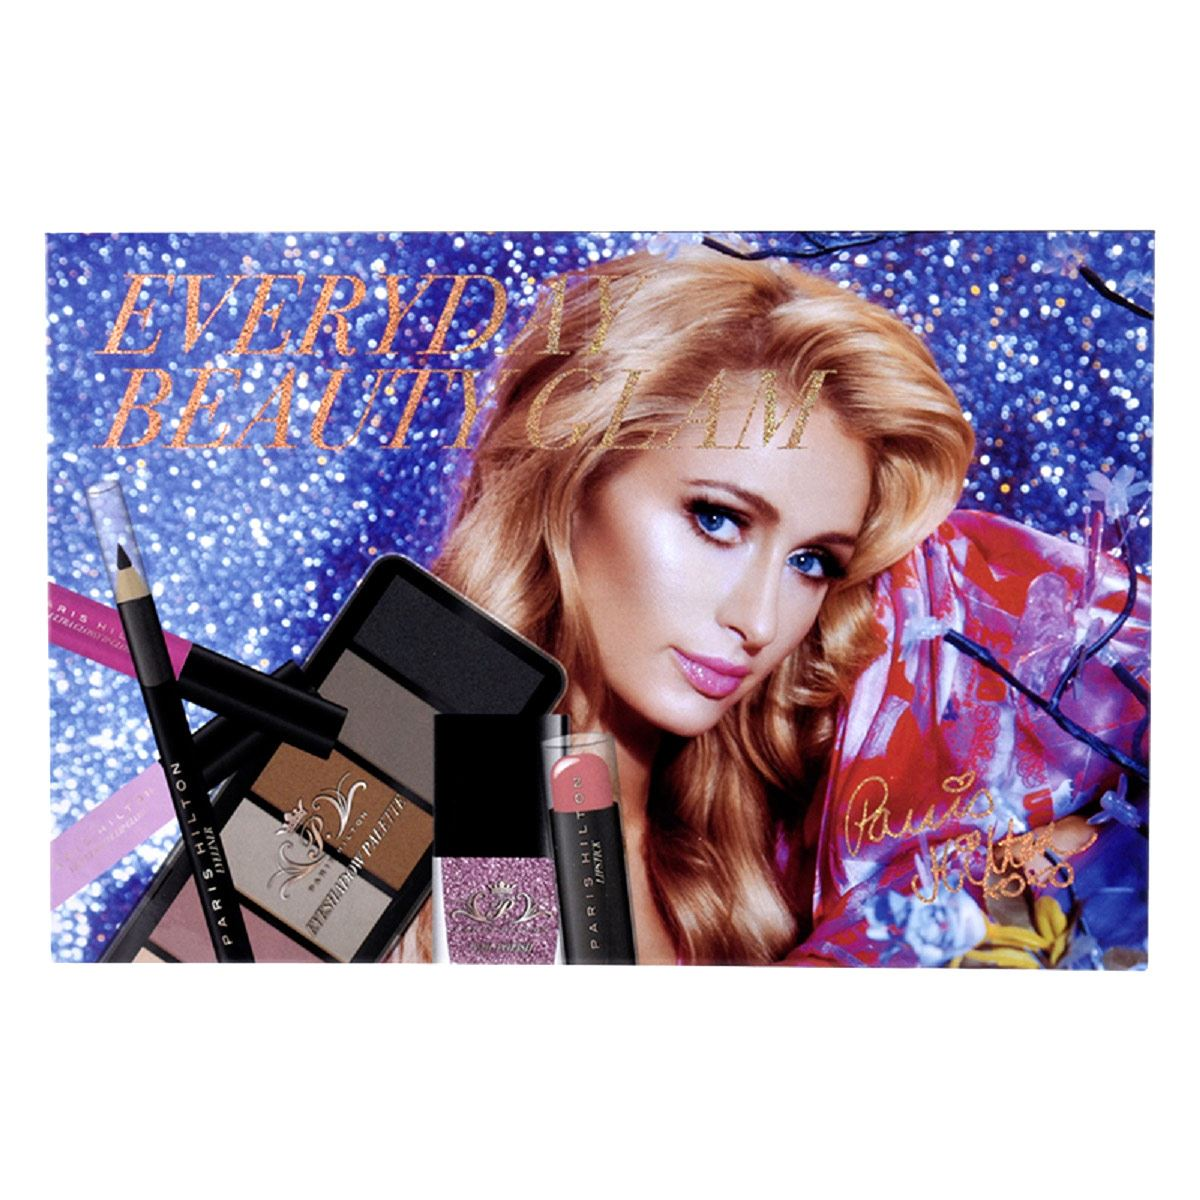 Estuche Paris Hilton Make Up Everyday Beauty Glam Set